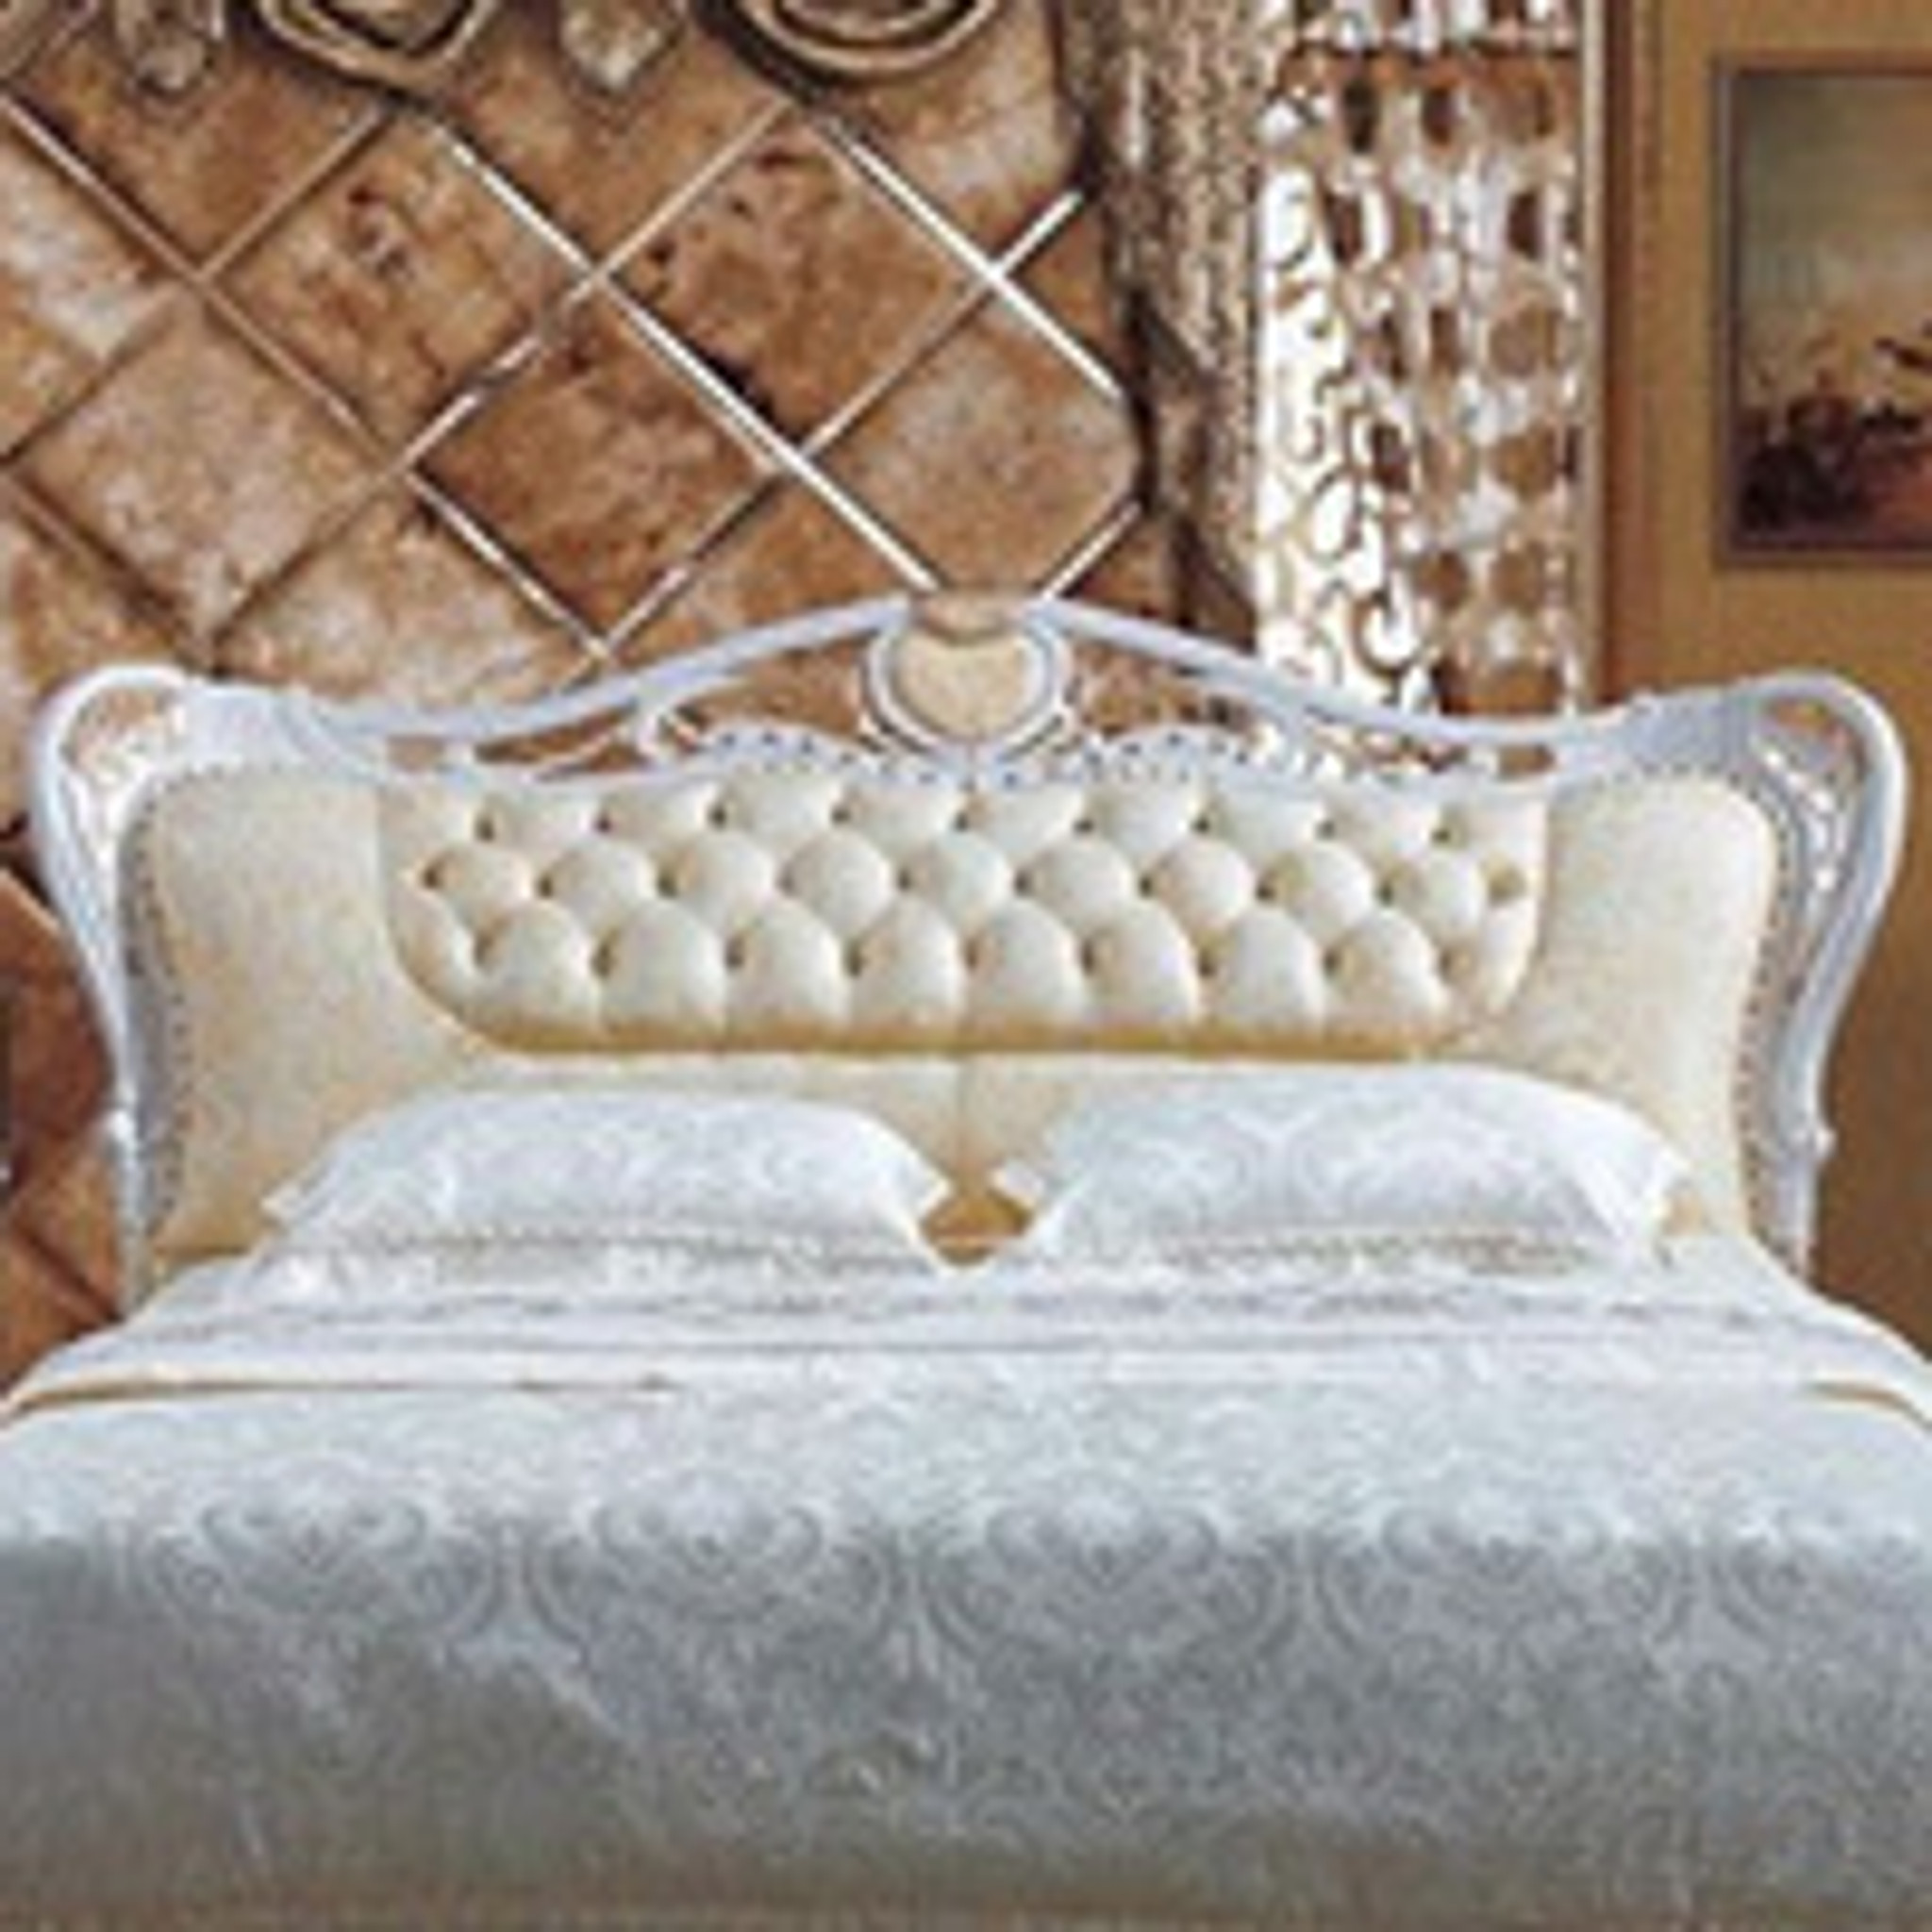 Elegant Bedroom Suites That Are Made Just For You and Available to Order Online!